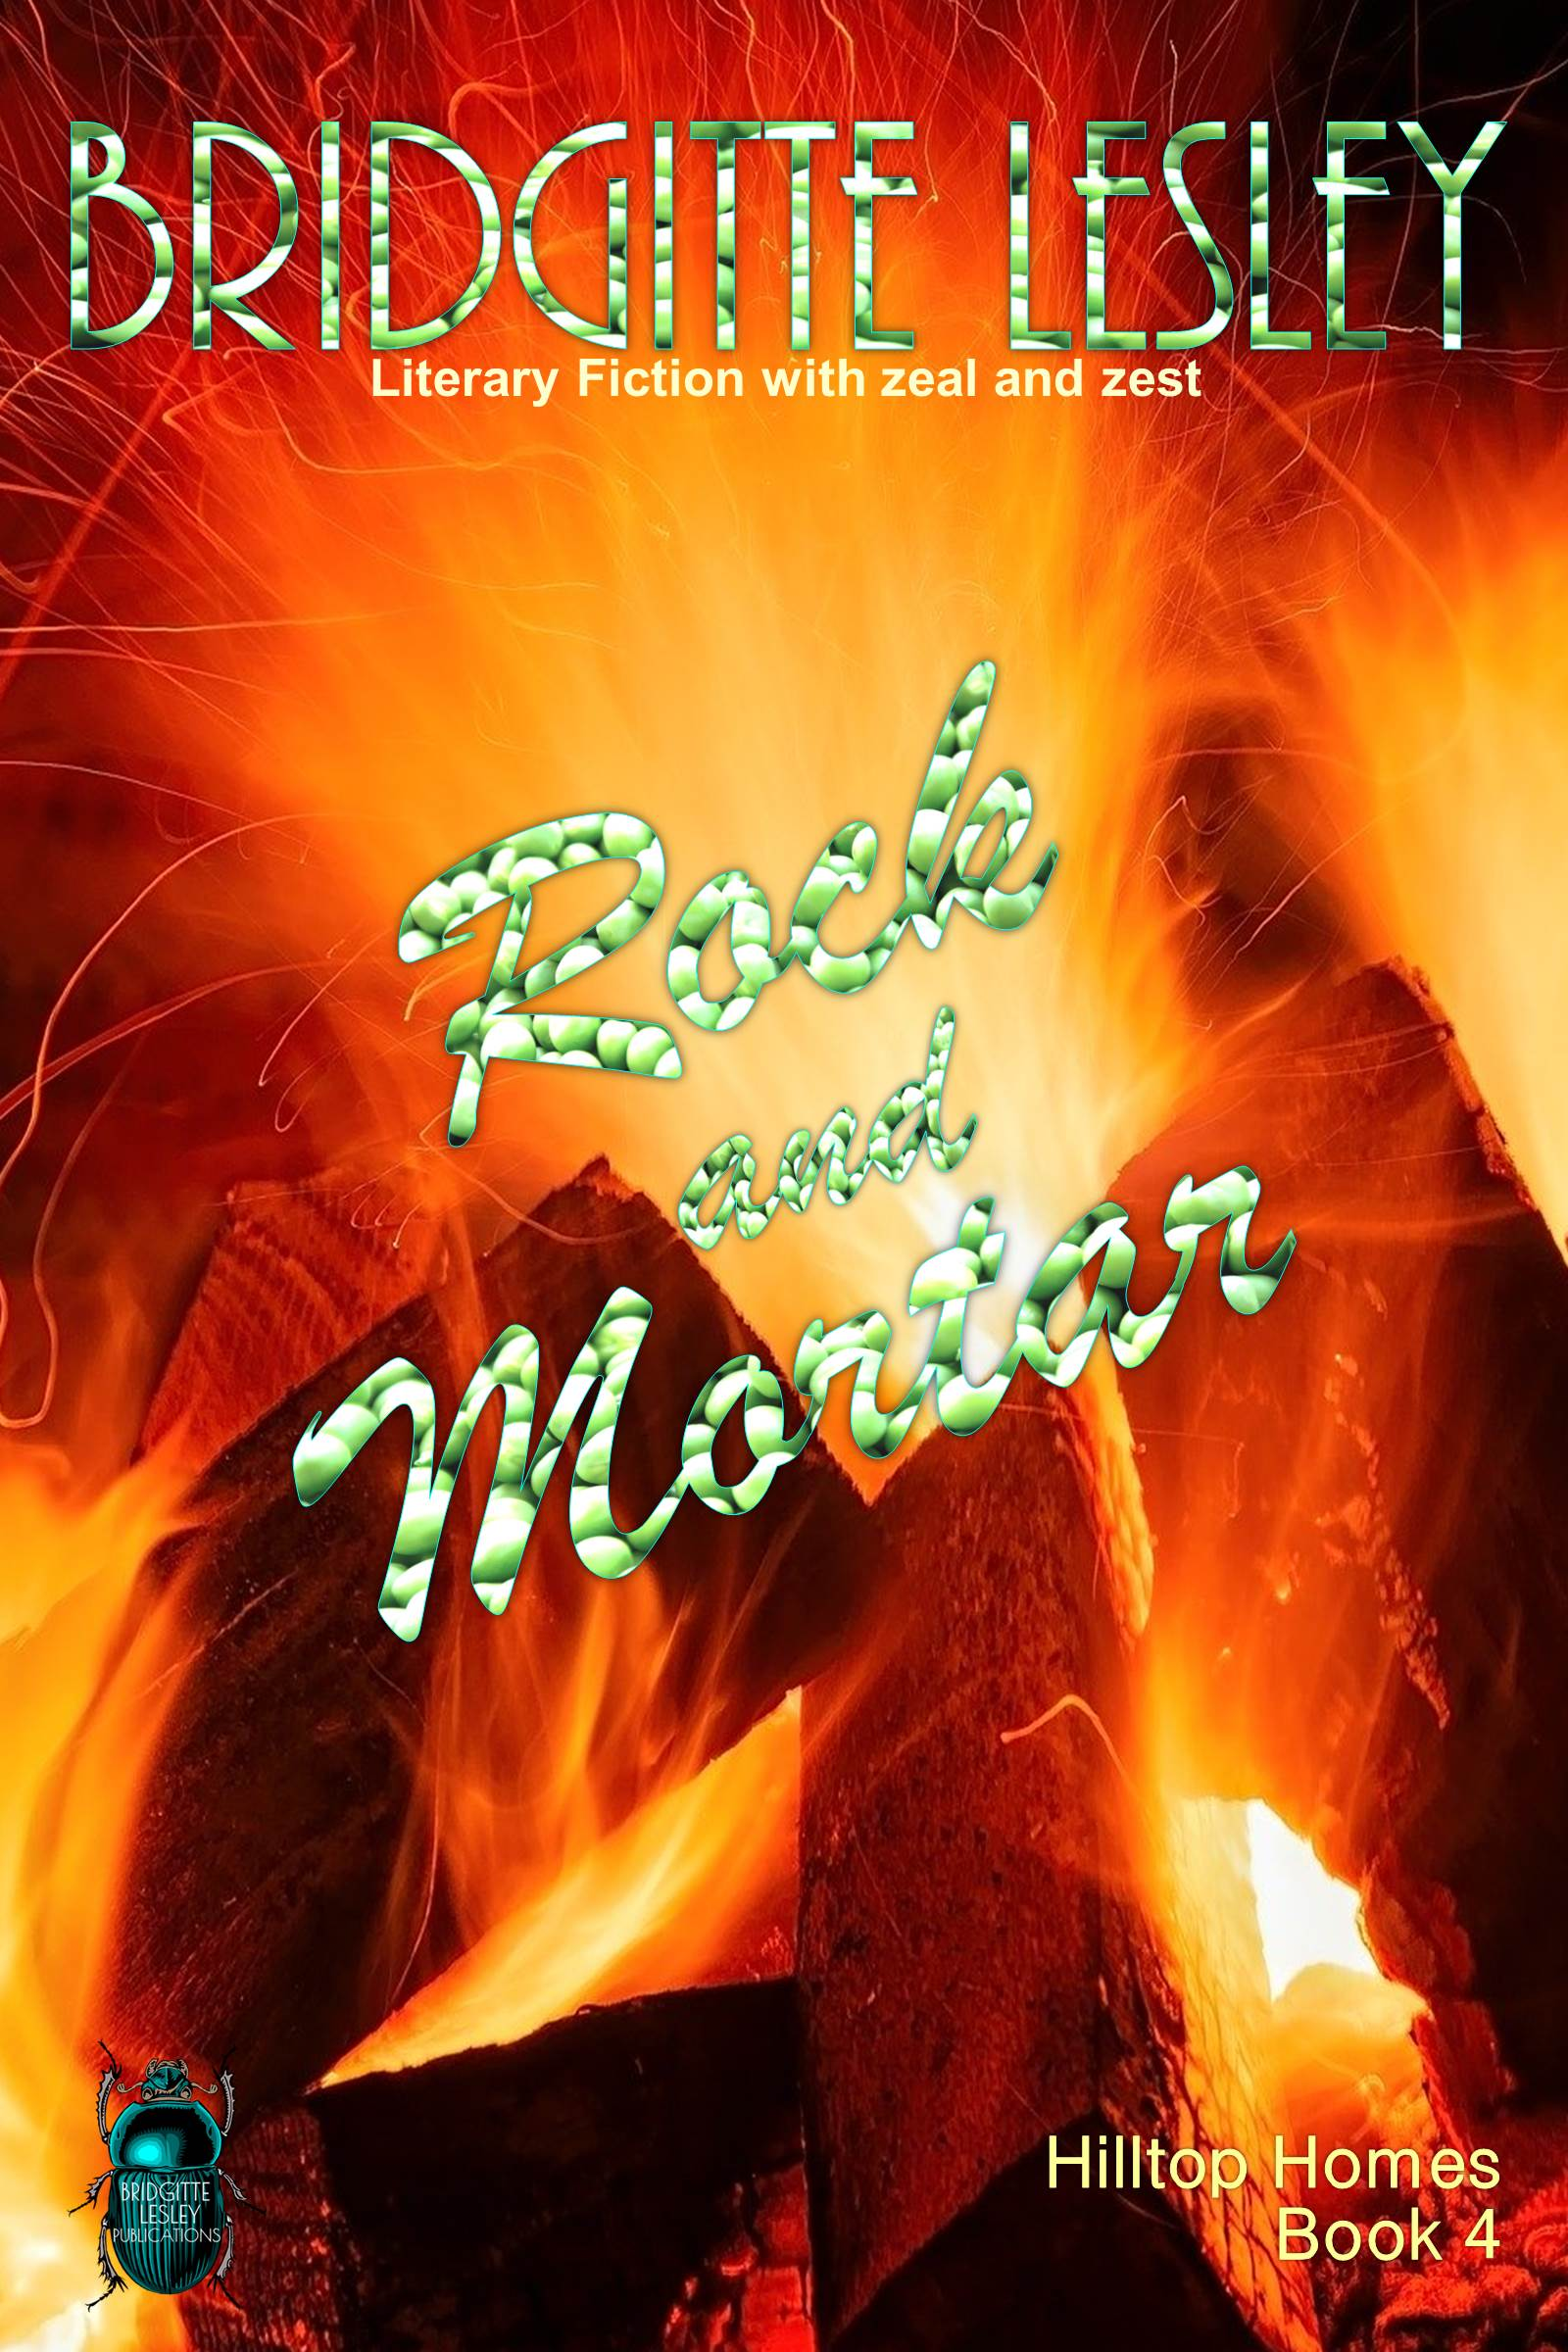 Book 4 Rock and Mortar COVER Powerpoint